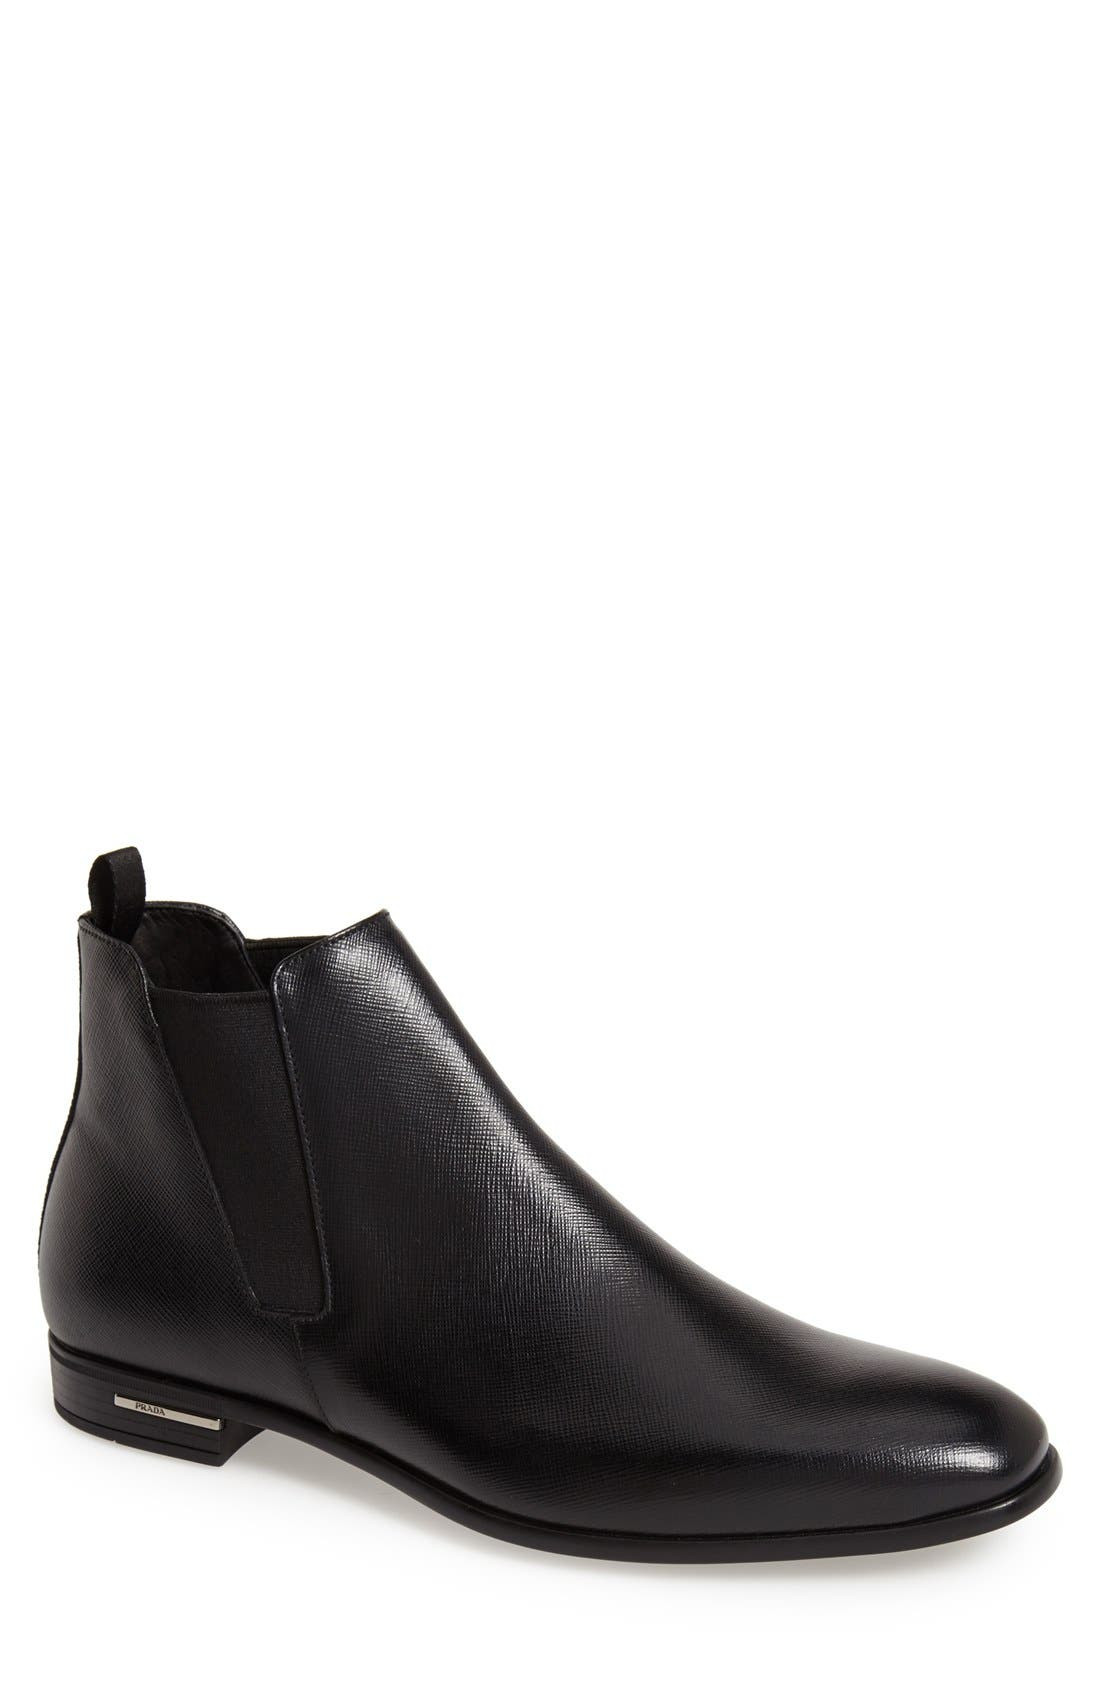 Prada Saffiano Leather Chelsea Boot (Men)